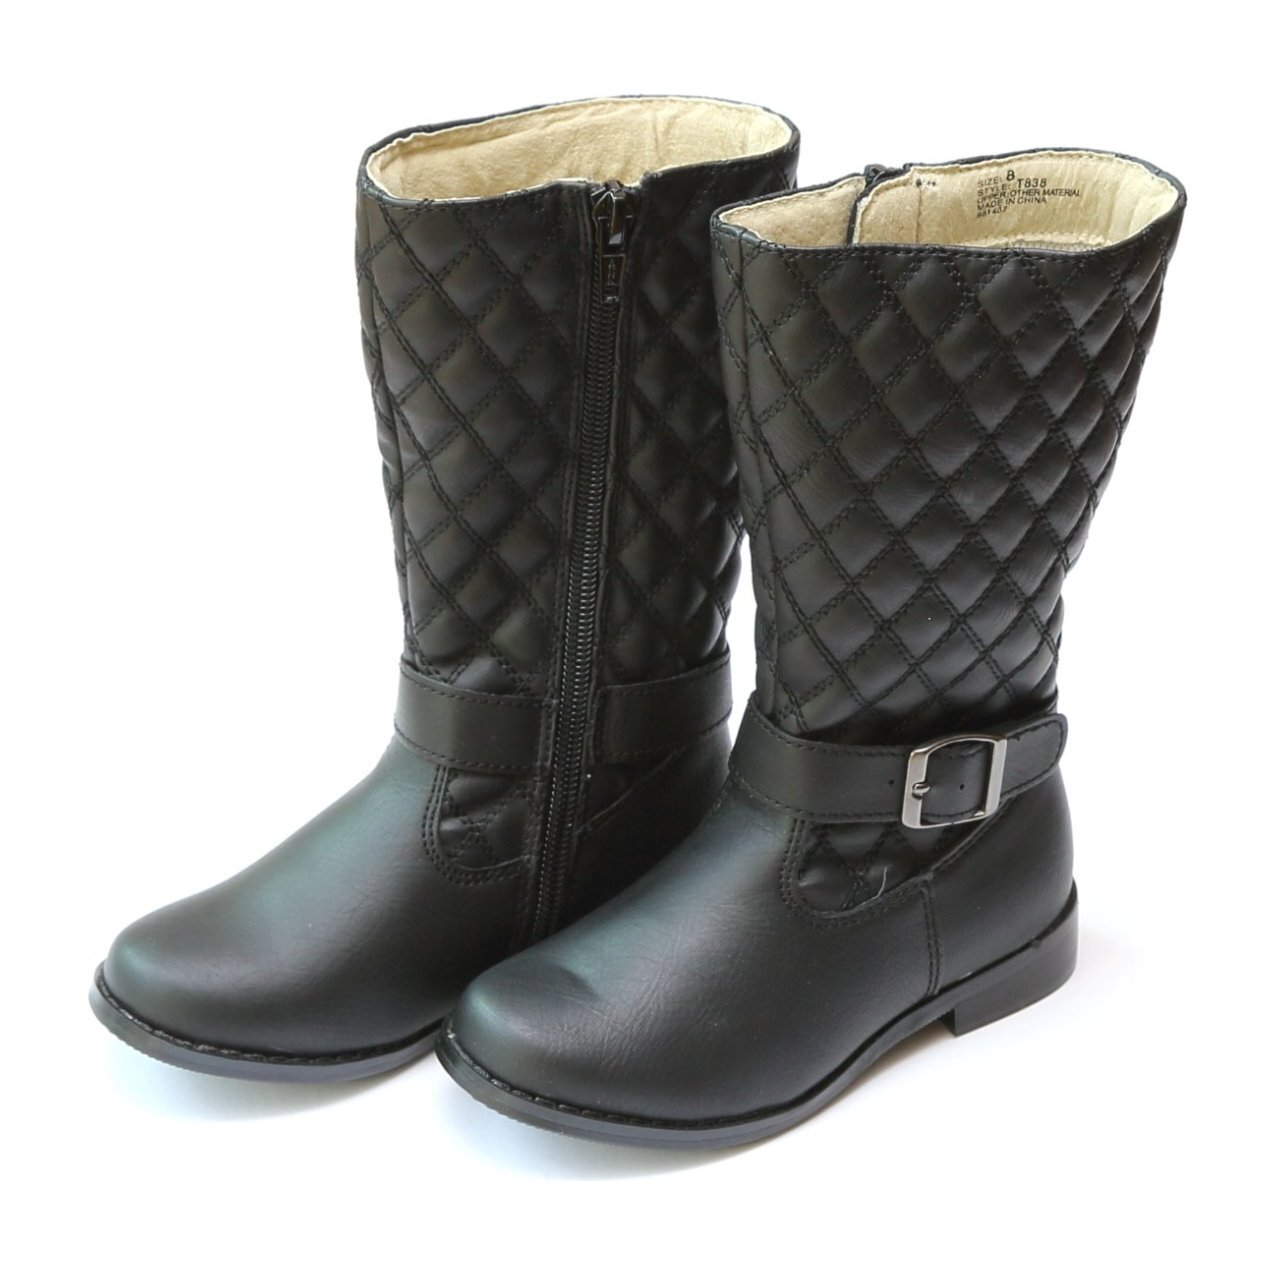 The Doll Maker Quilted Tall Boot